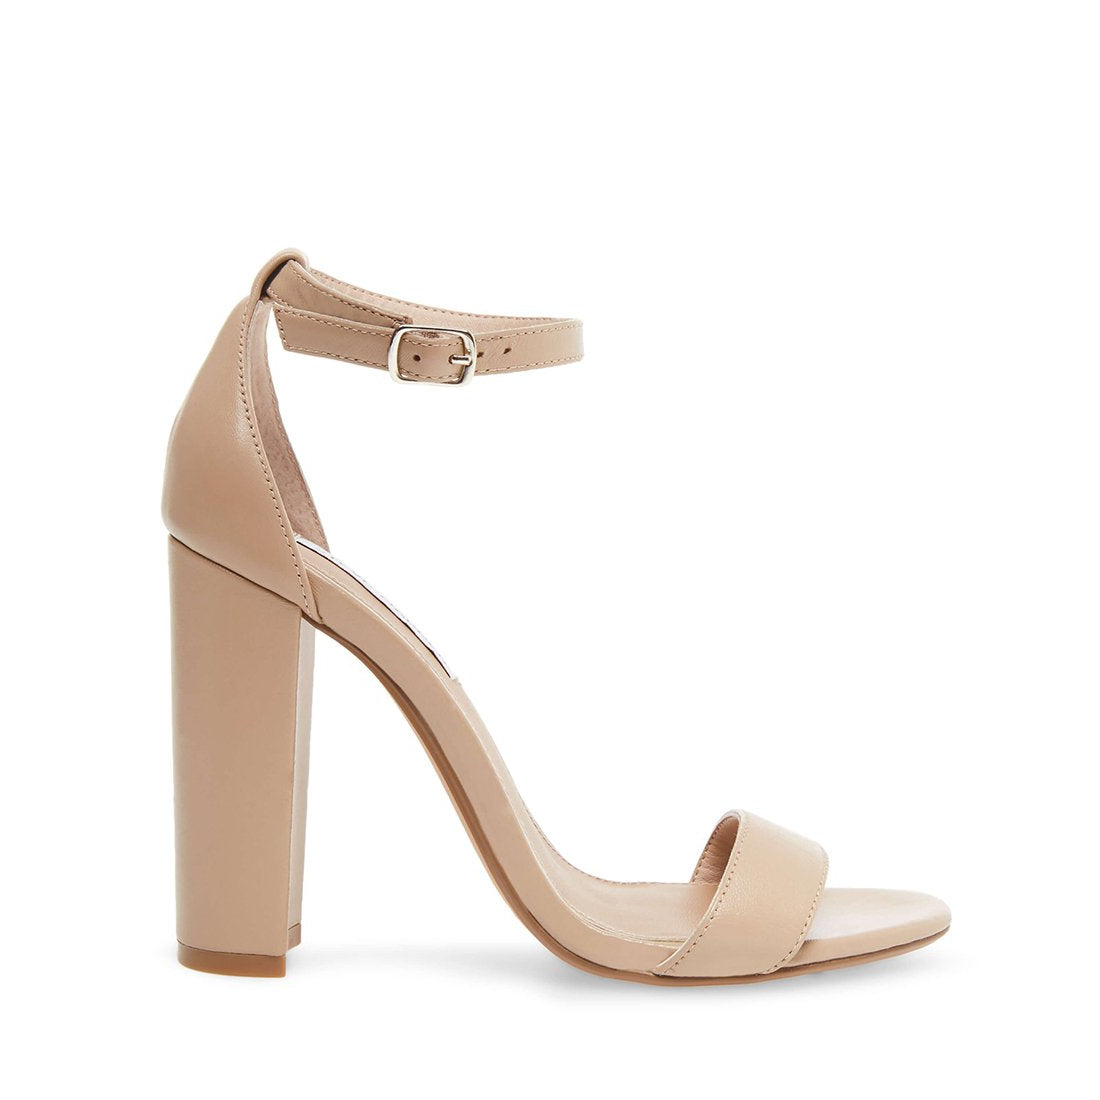 CARRSON BLUSH LEATHER - Steve Madden